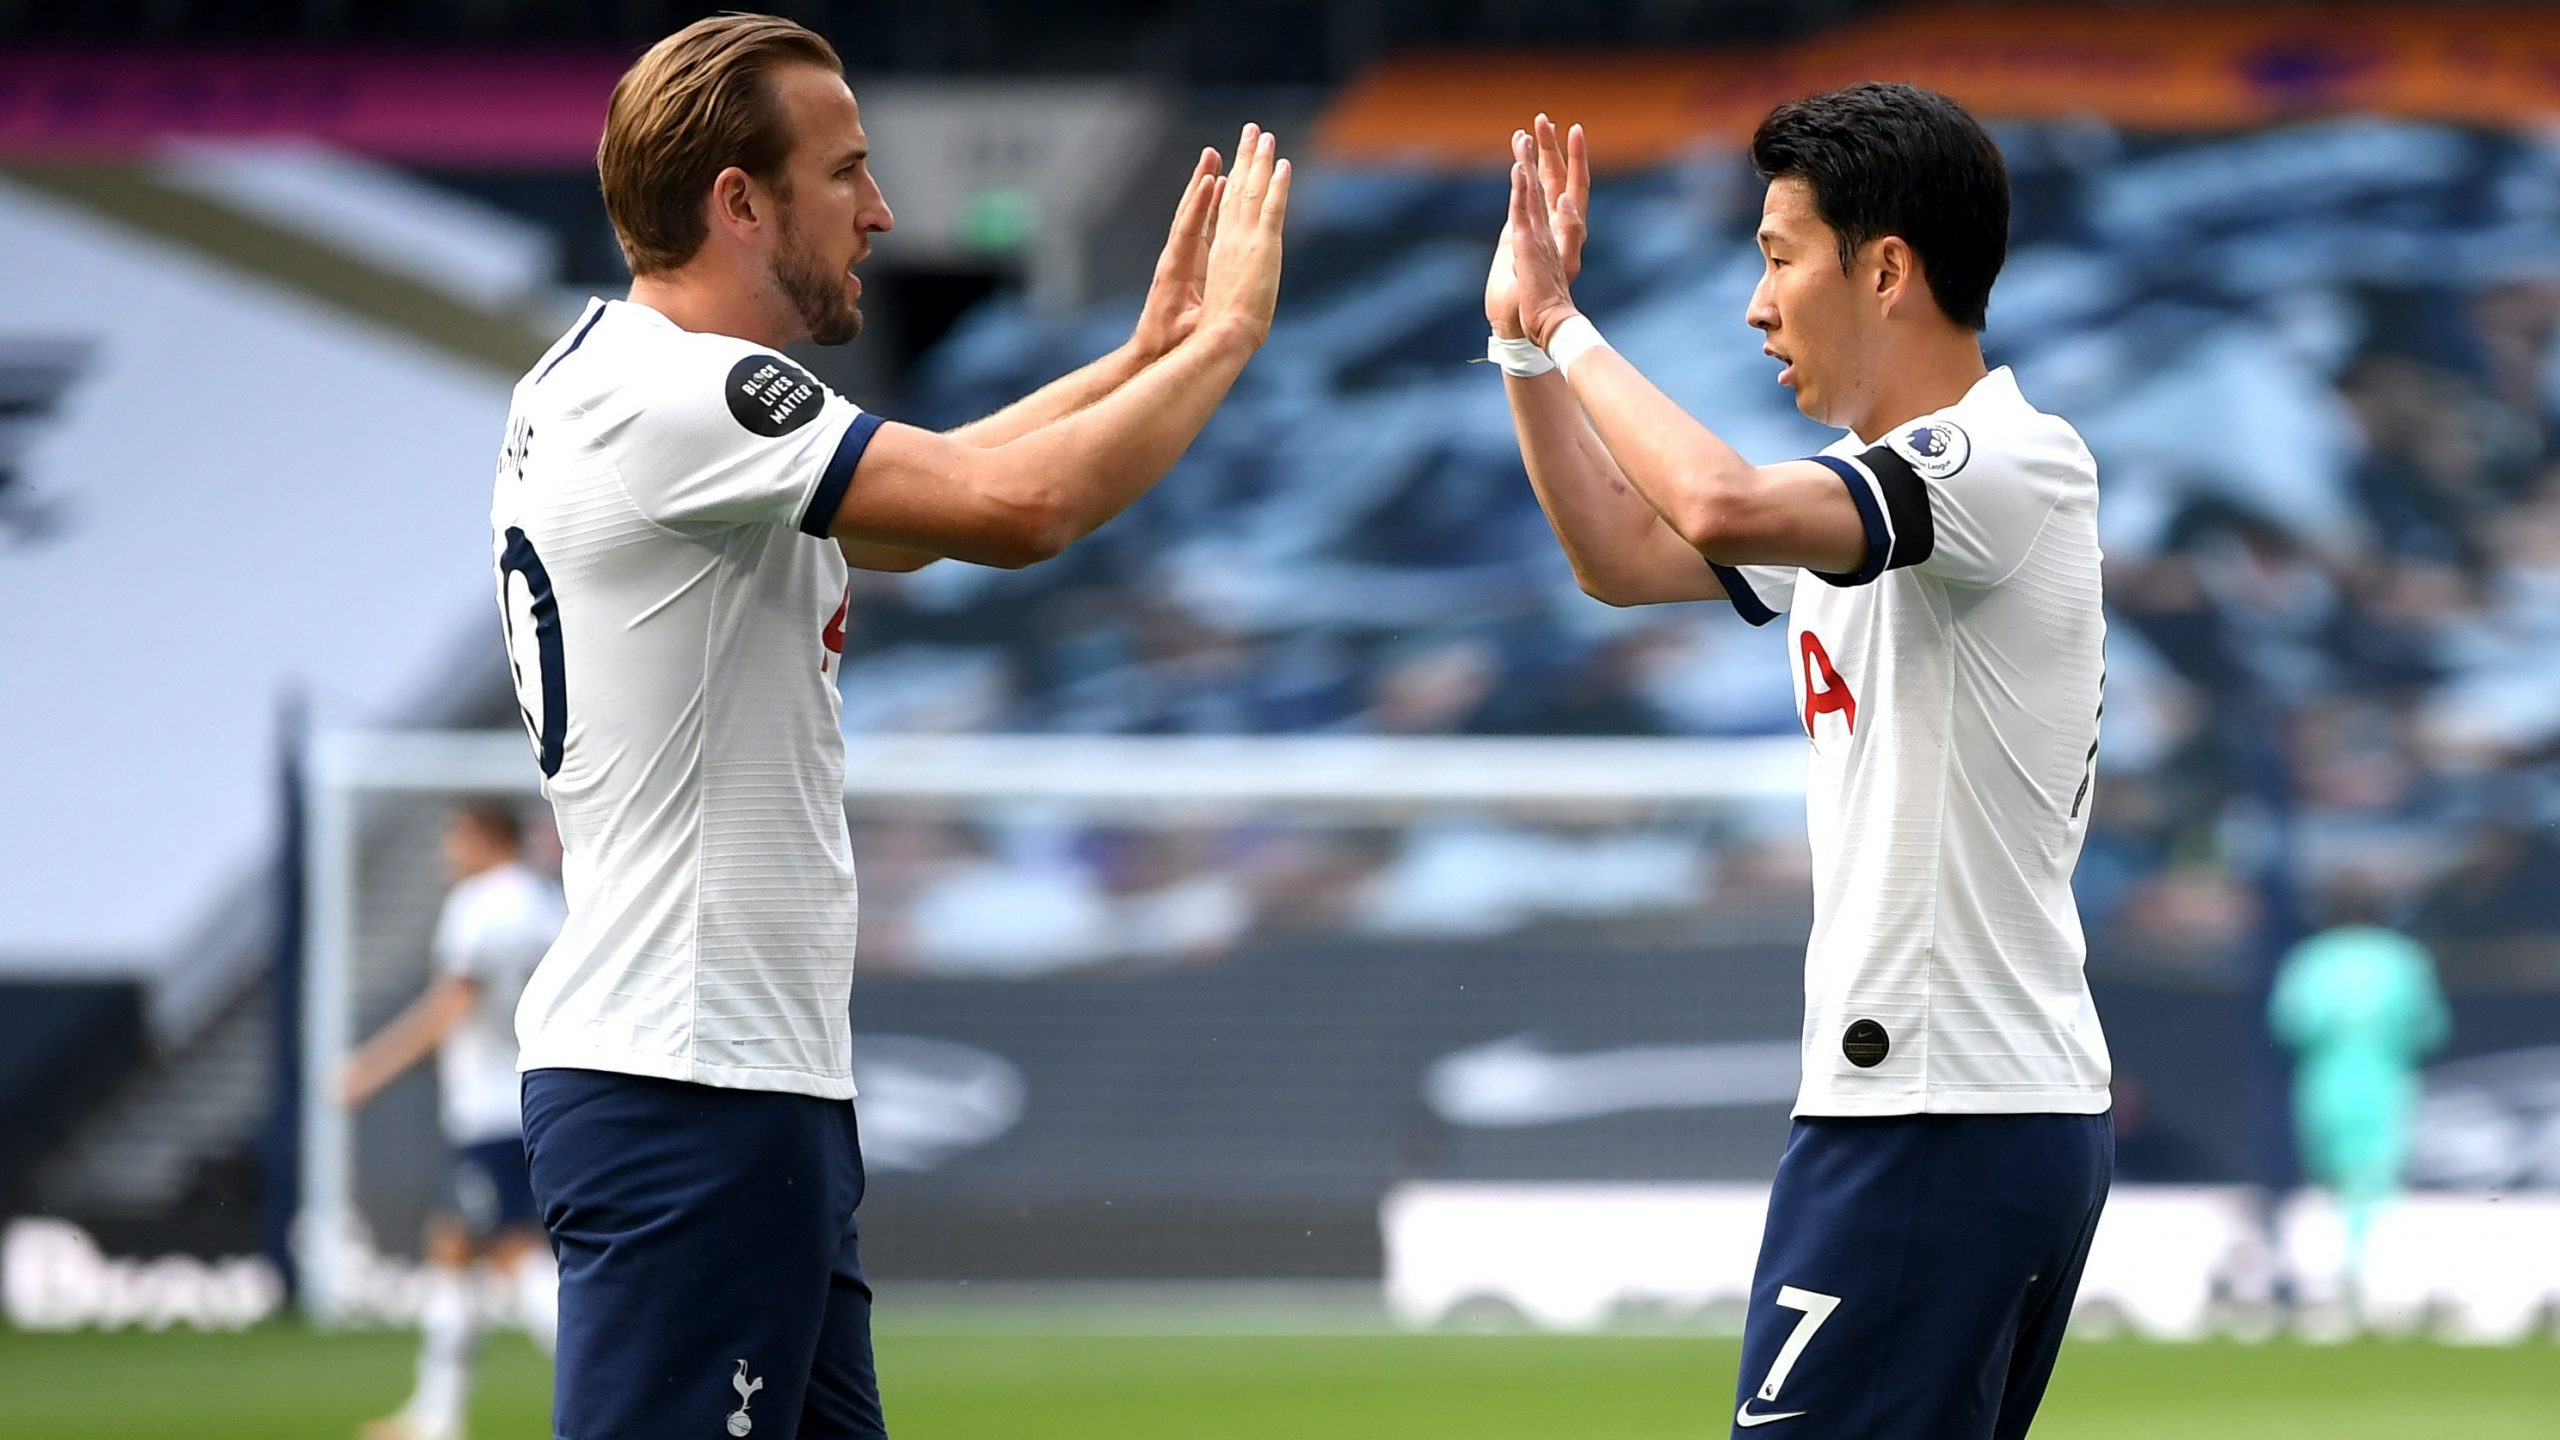 Harry Kane opens up on his partnership with Tottenham Hotspur ace Son Heung-Min